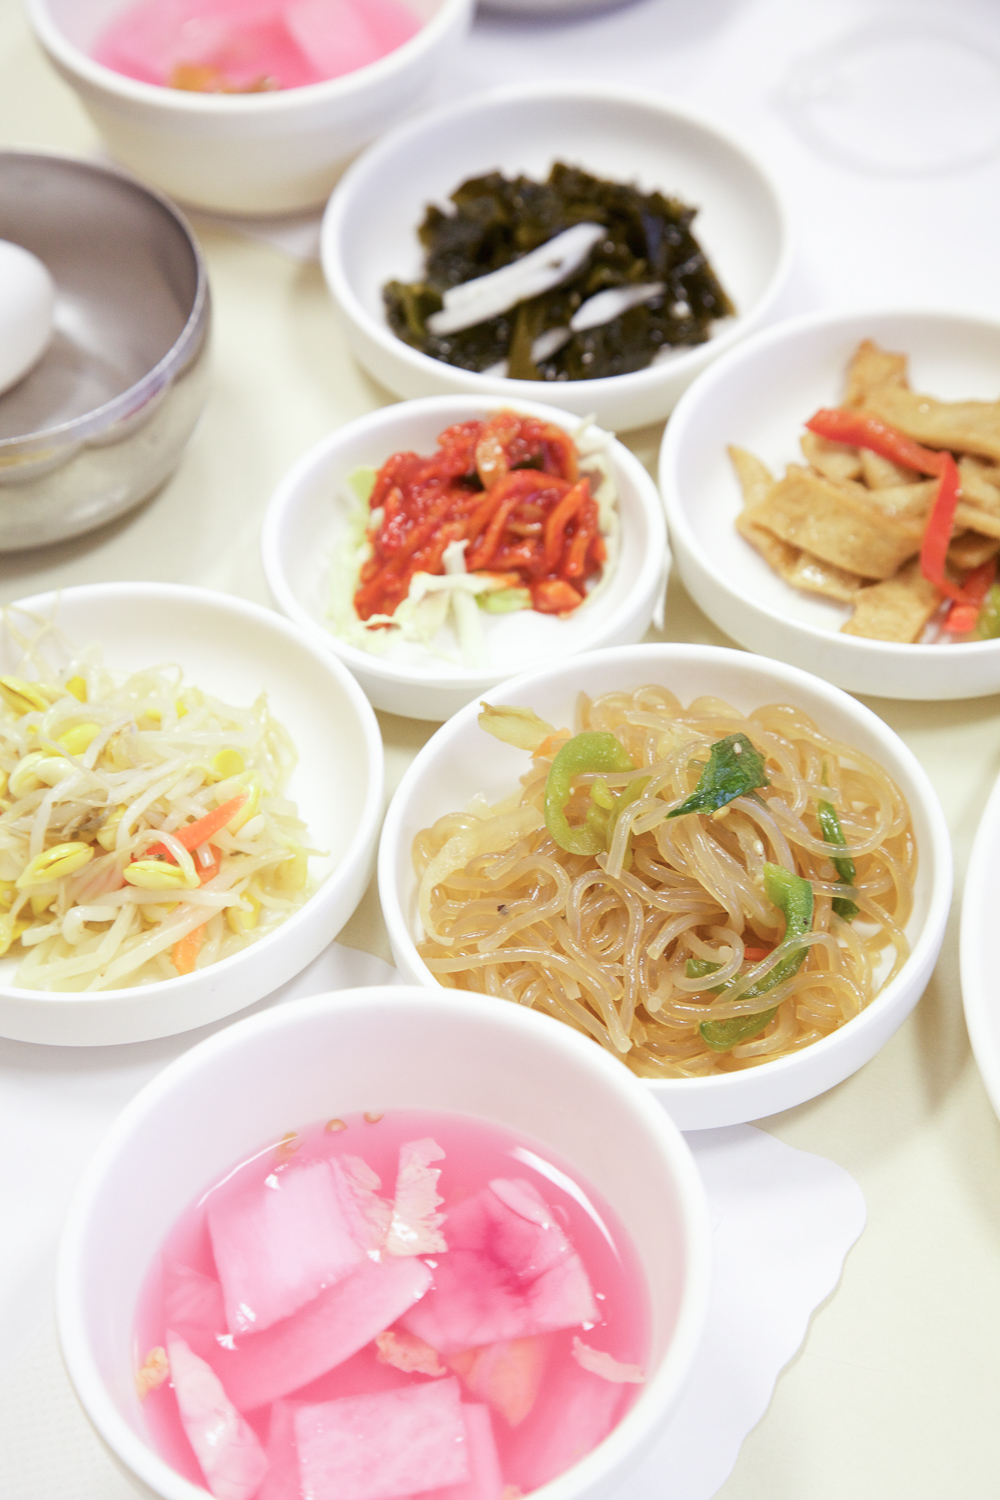 Family of banchan.